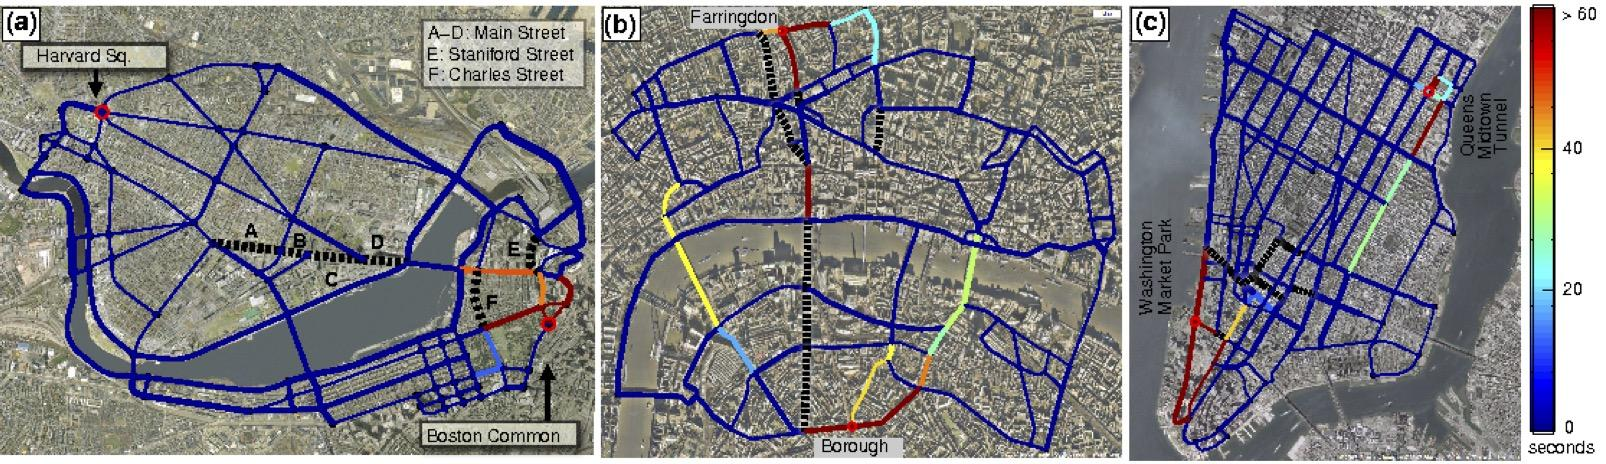 Fig. 2. Networks of principal roads in (a) Boston, USA, (b) London, UK and (c) New York, USA. The color corresponds to the additional travel time needed if the road is cut.[7]